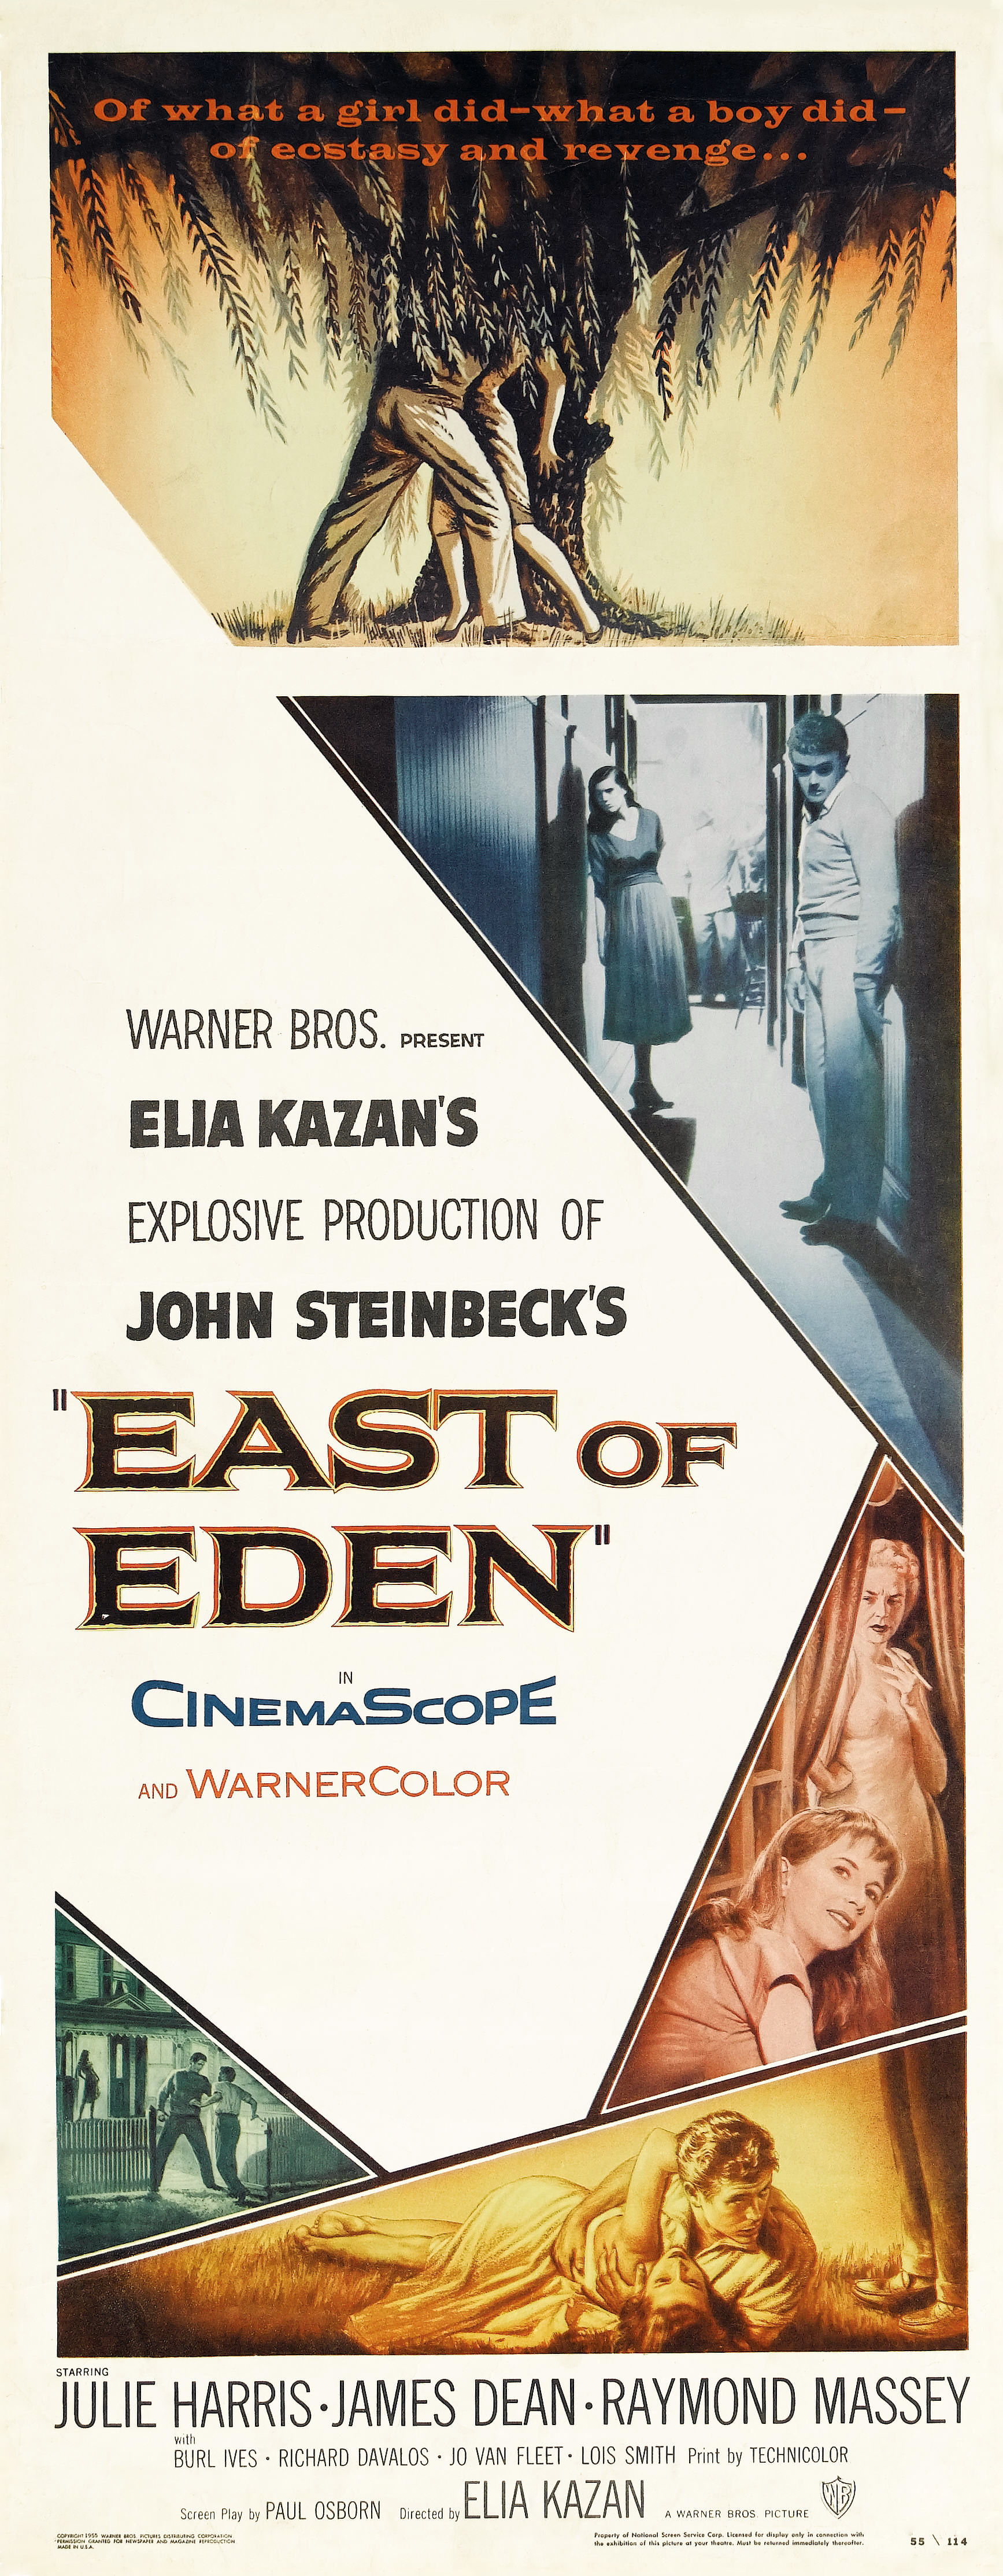 east of eden East of eden by john steinbeck paperback book none of these pages contain the actual story otherwise i think this book is i n good shape has an introduction by david wyatt.